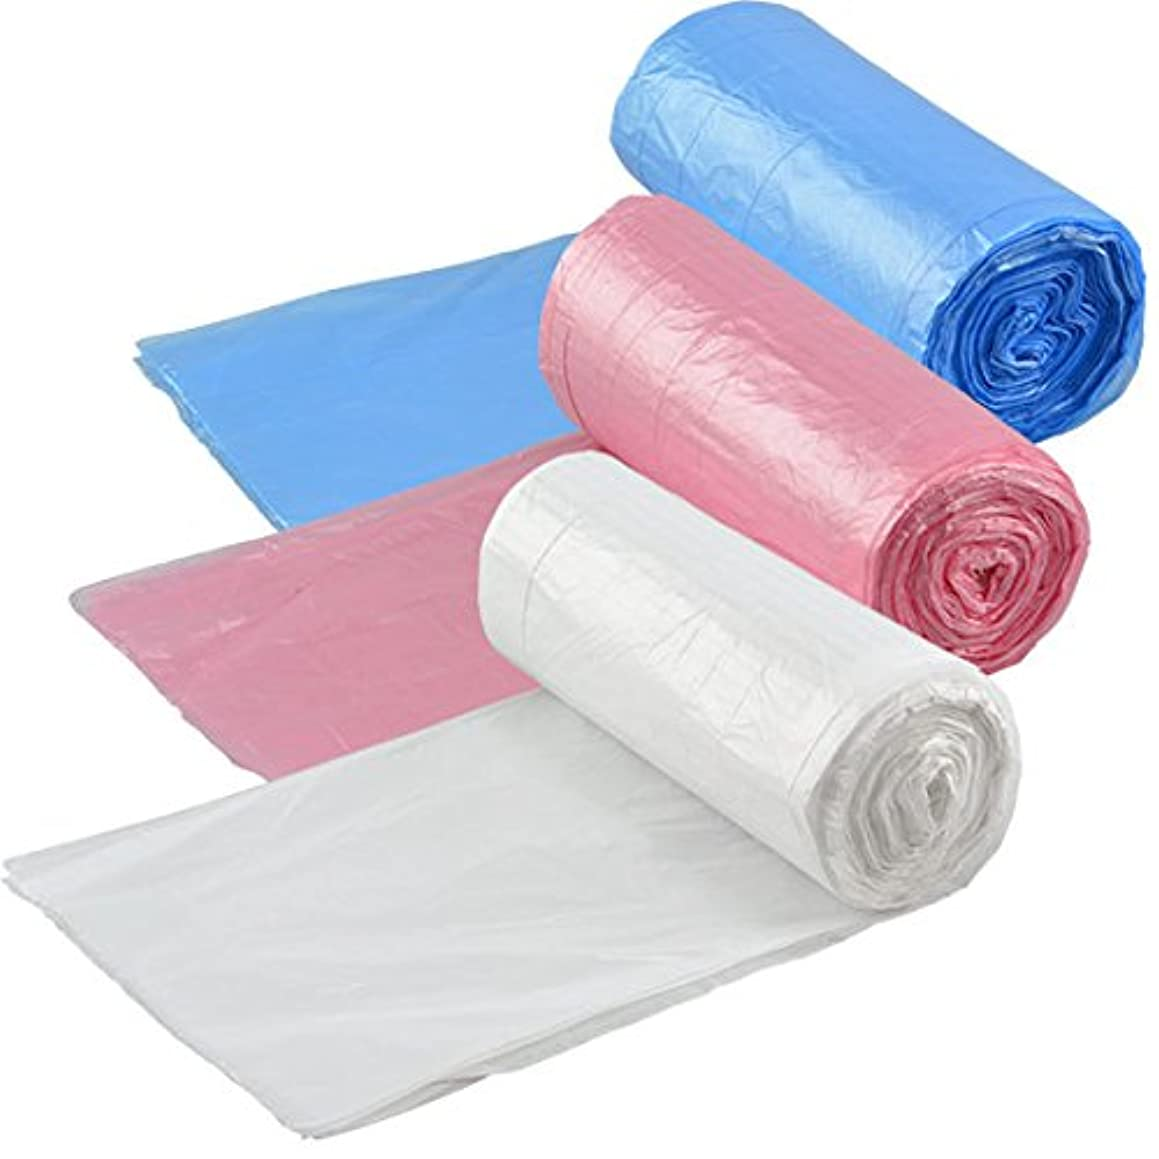 100 ct small scented trash bags. Mix scents (vanilla, rose, fresh, lavender, lemon) 50ctX2pk